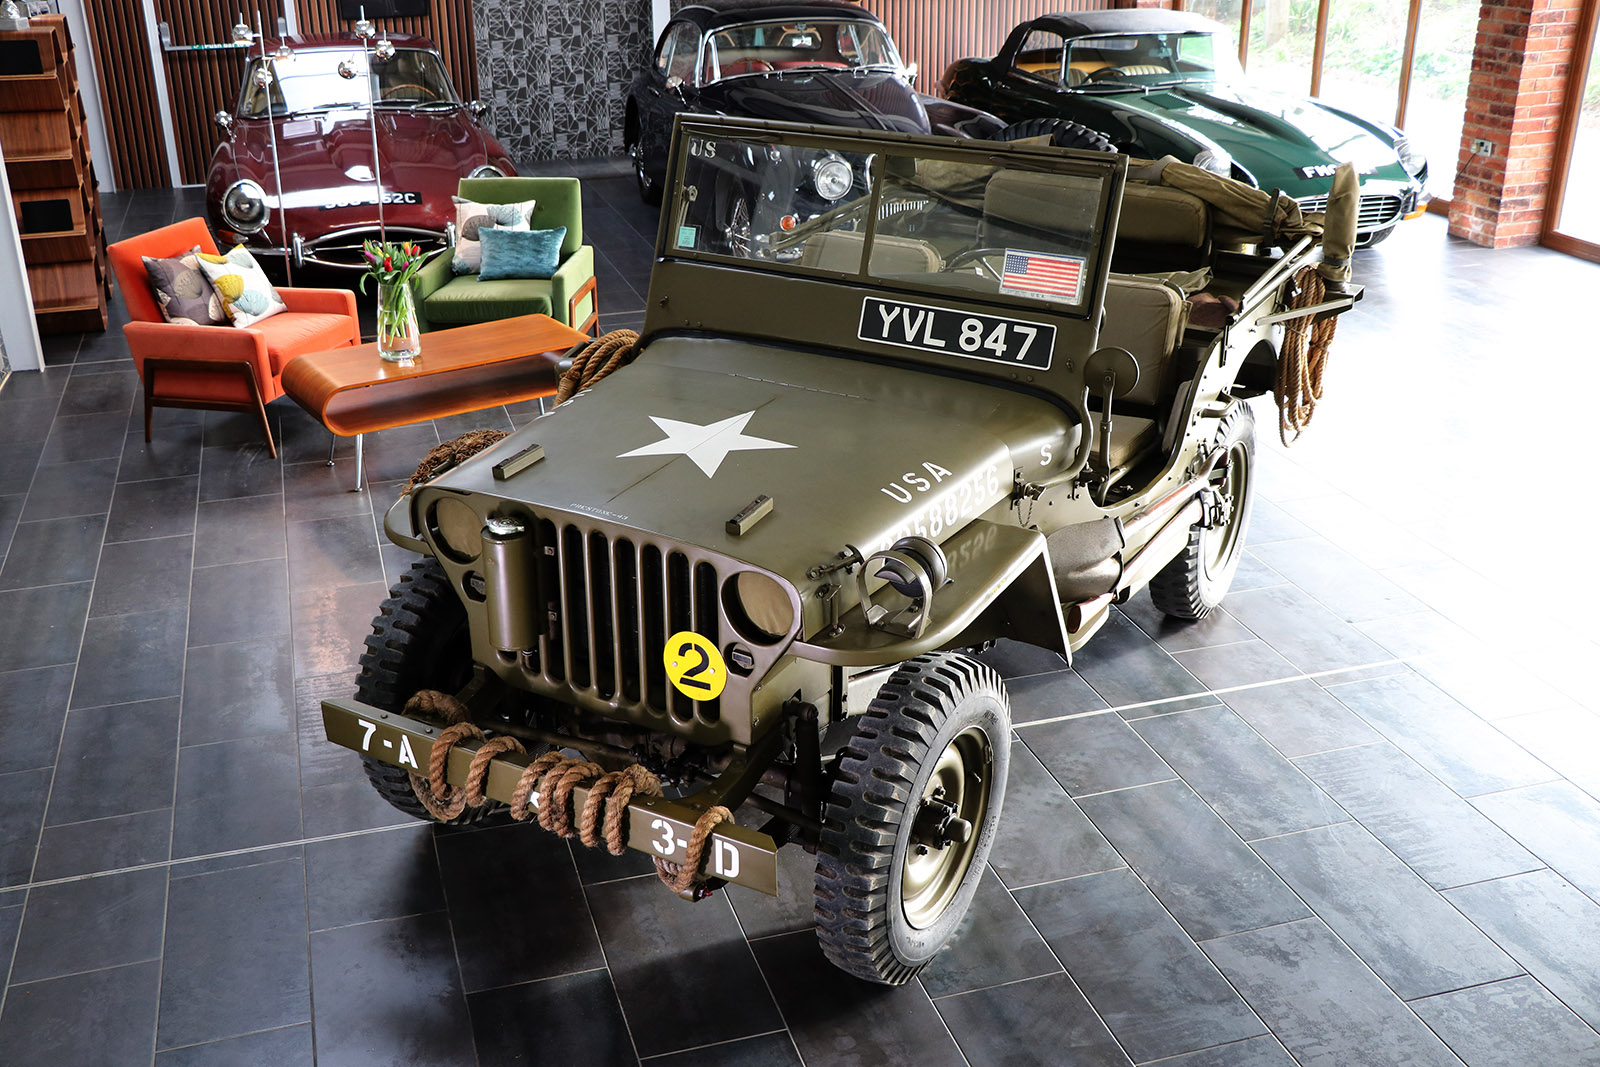 1945-willys-jeep-green-sayer selection-1-web.jpg